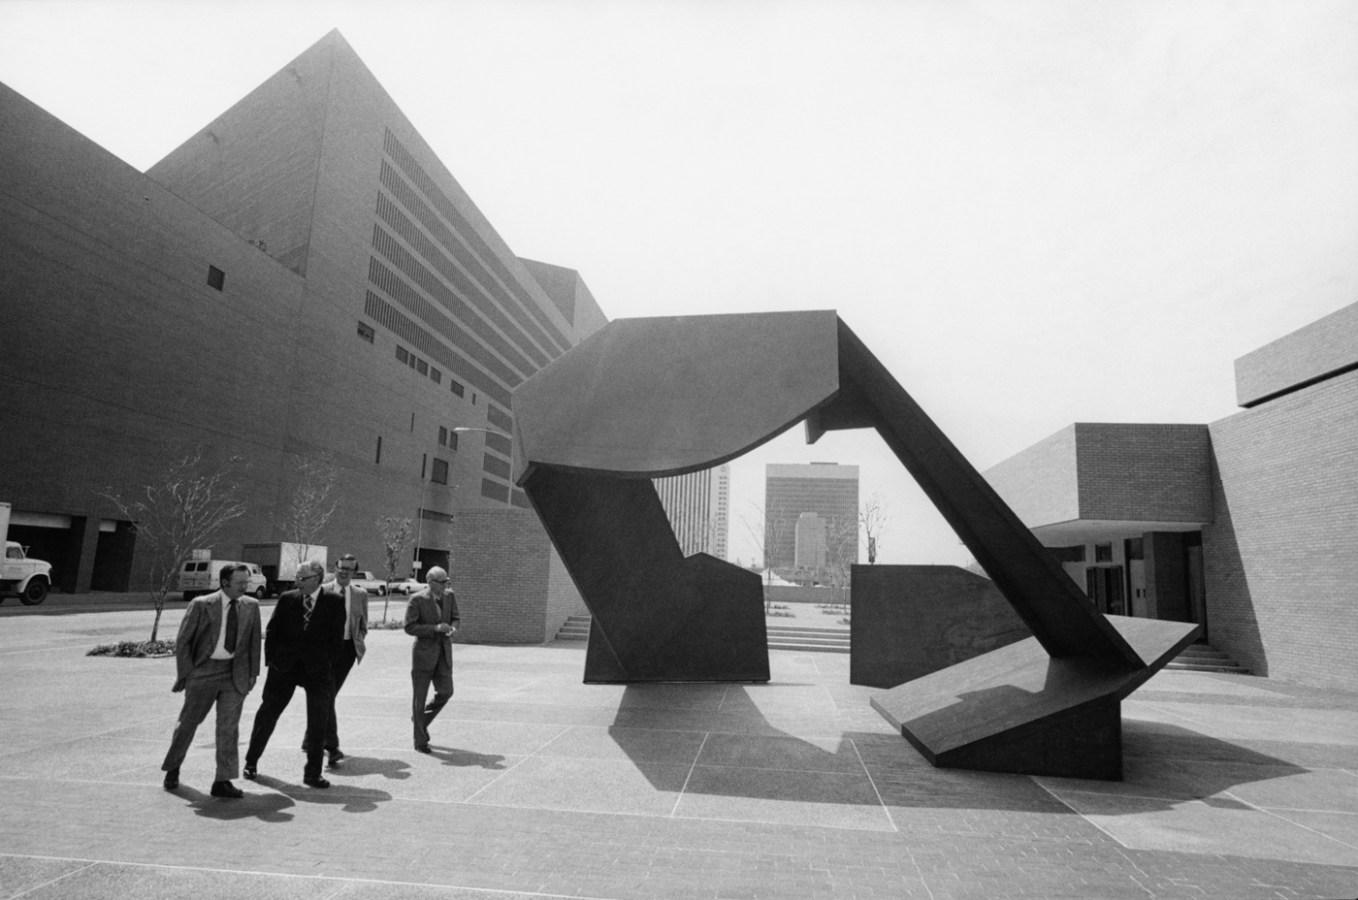 Black-and-white photograph of a group of businessmen passing an empty plaza with a modern geometric sculpture